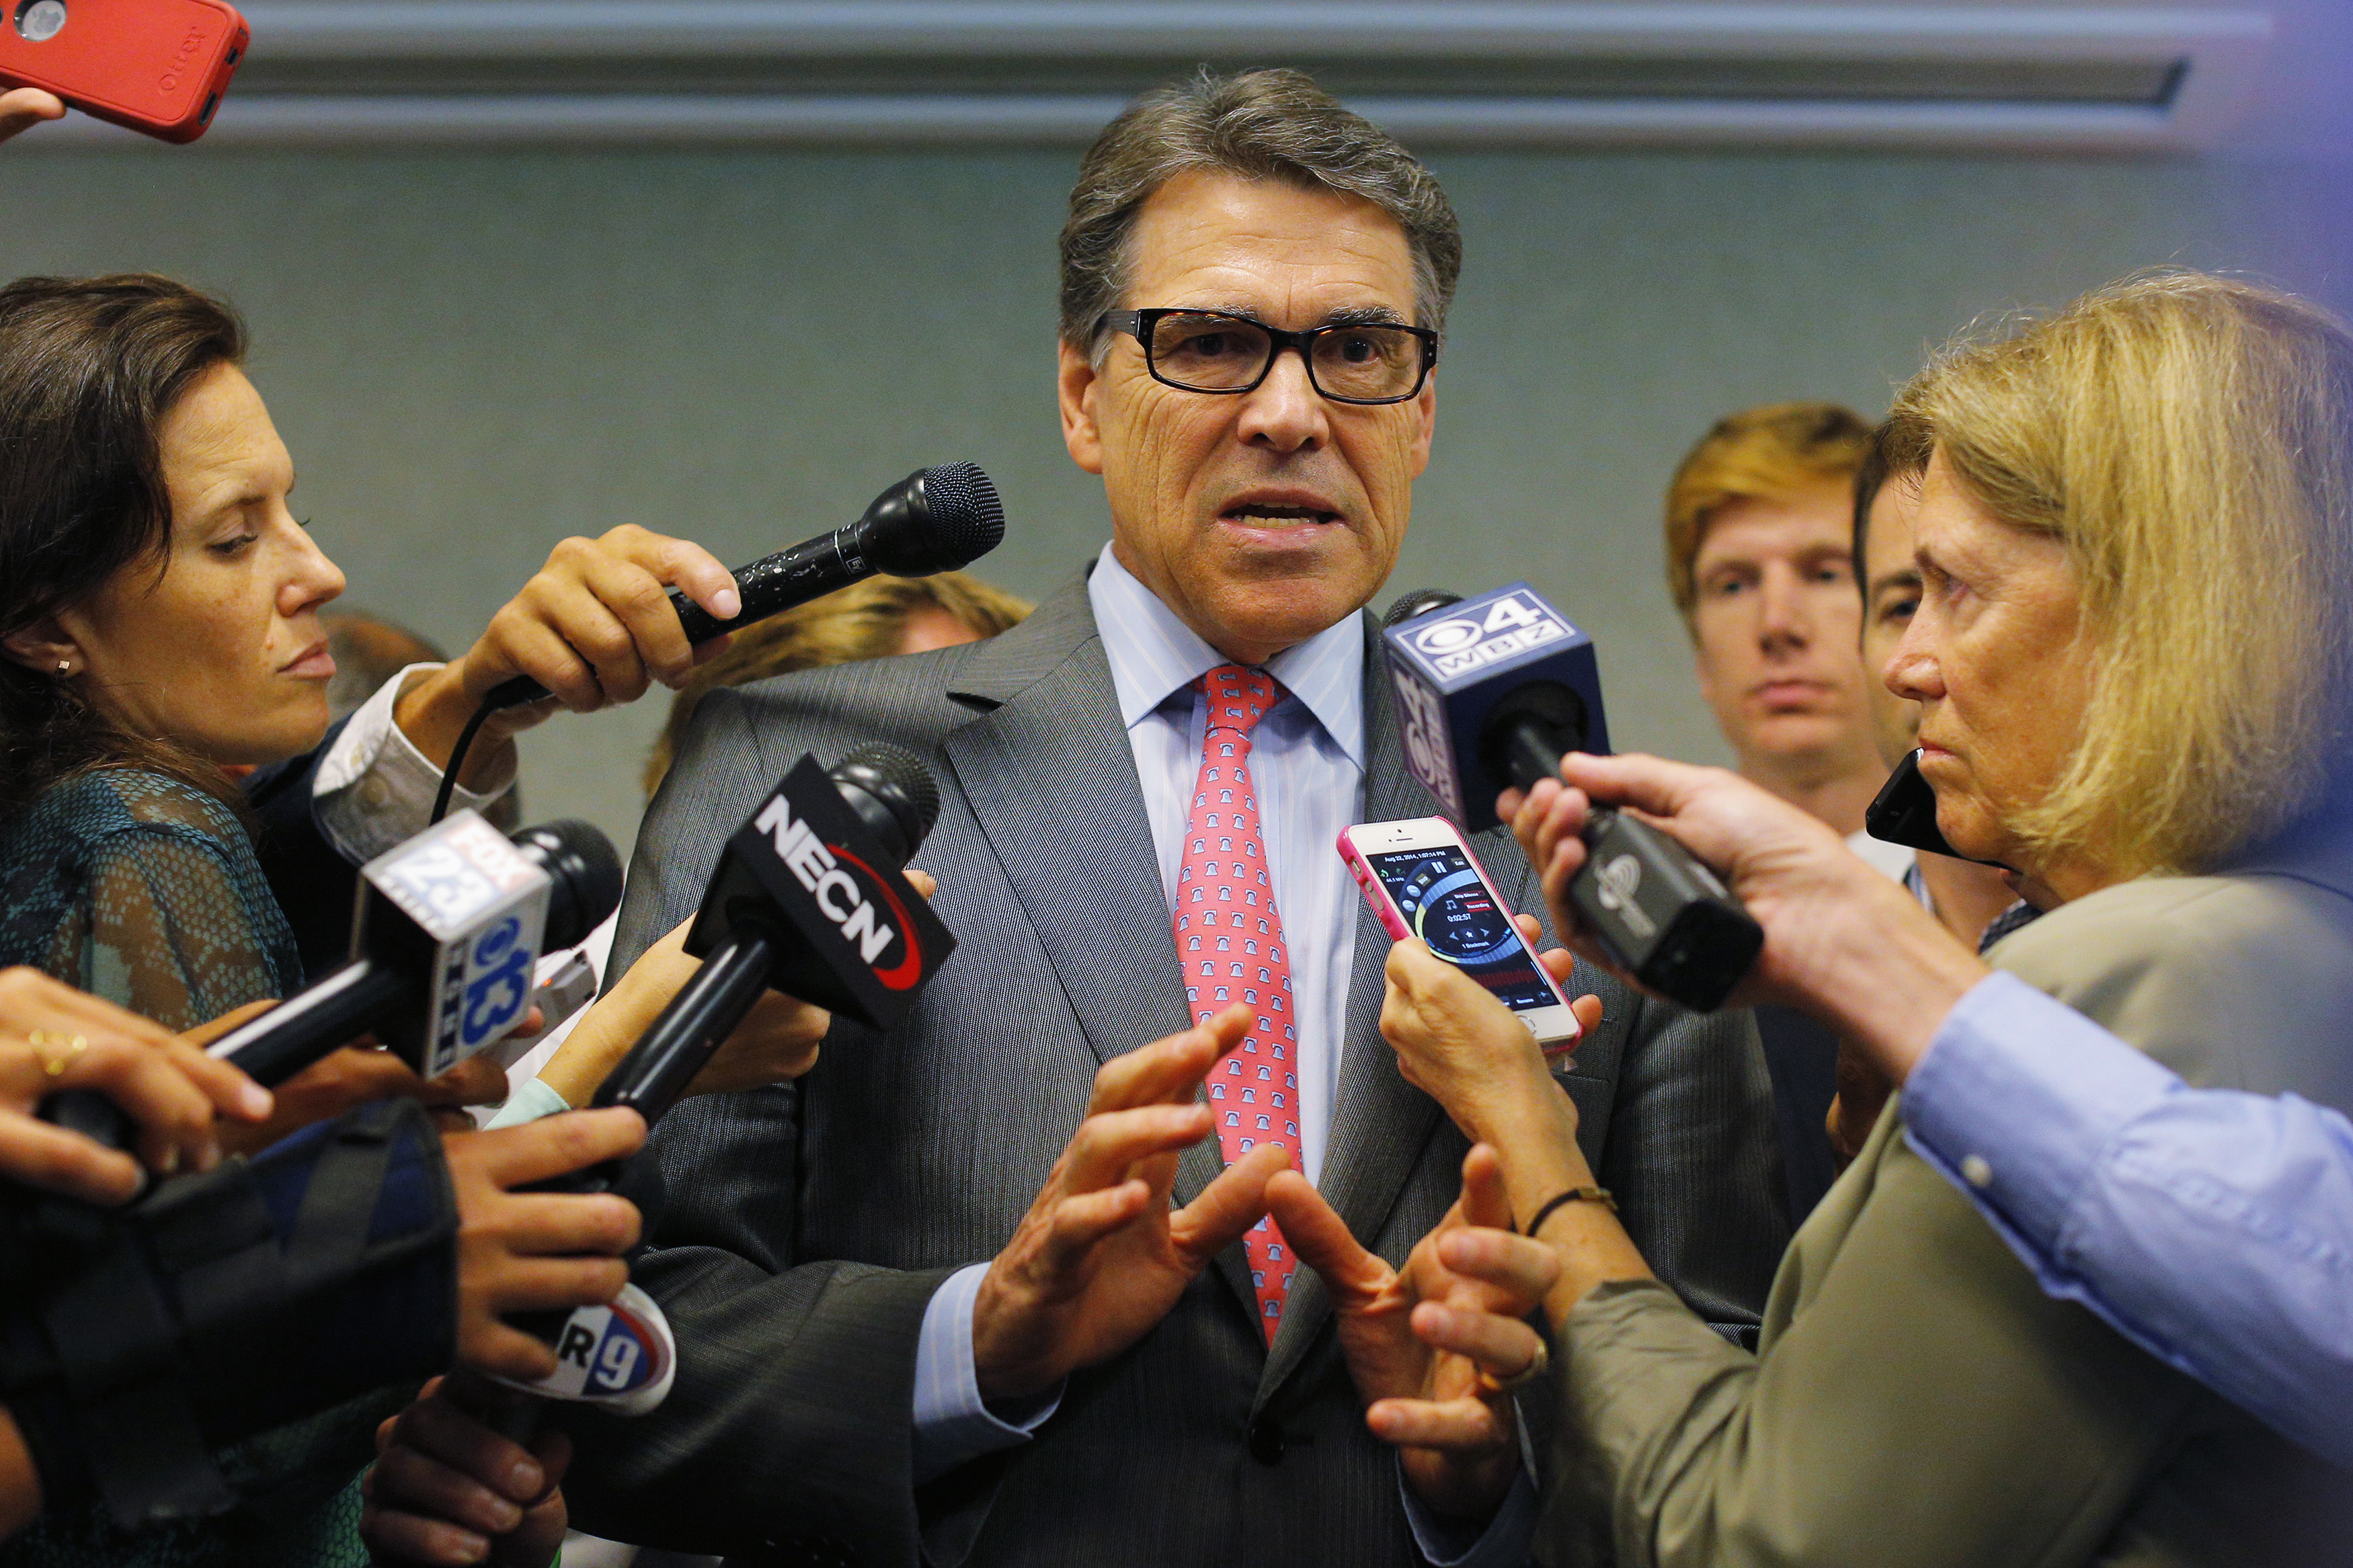 Texas Governor Rick Perry, a possible Republican candidate for the 2016 presidential race, answers questions from reporters at a business leaders luncheon in Portsmouth, New Hampshire on Aug. 22, 2014. Photo by Brian Snyder/Reuters